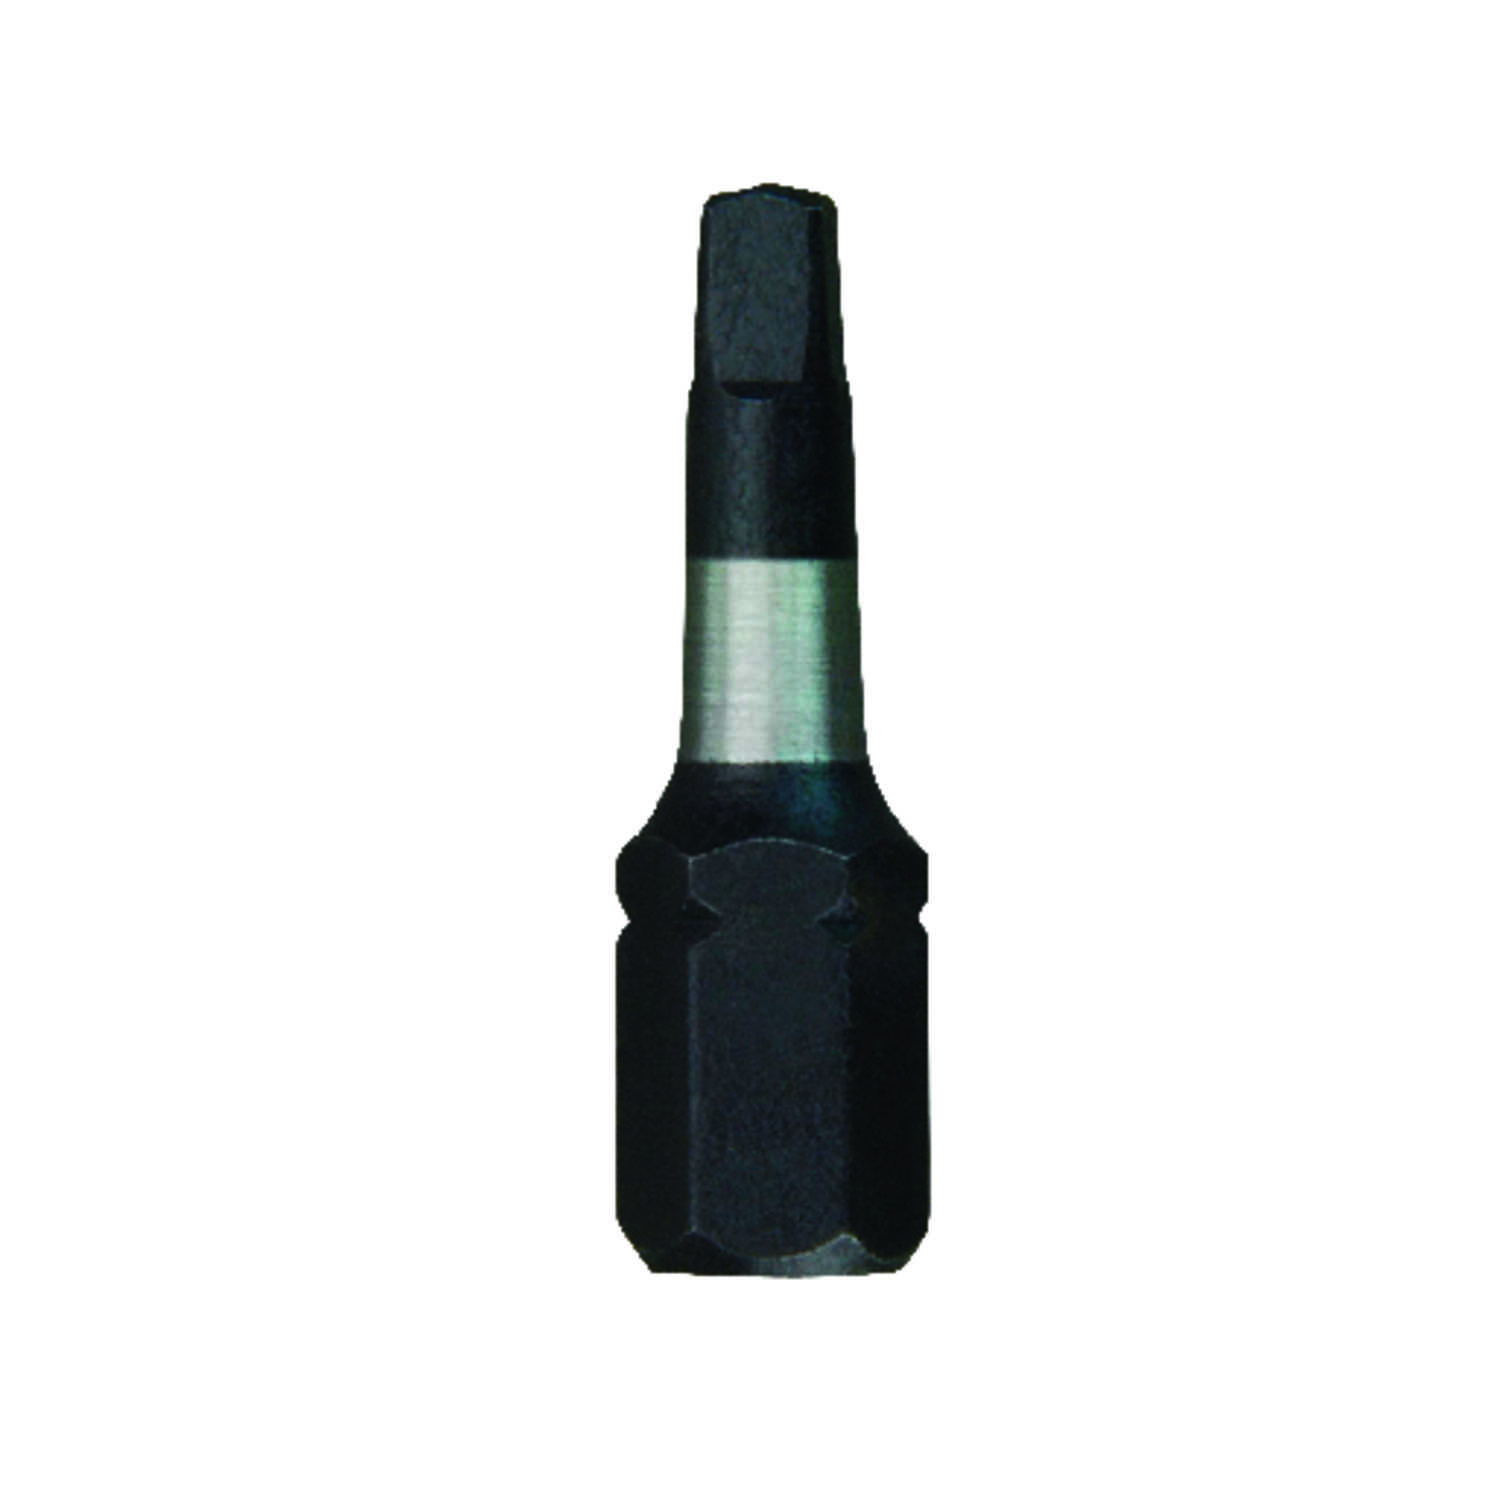 Milwaukee  SHOCKWAVE  Square  #2   x 1 in. L Impact Duty  Screwdriver Bit  Steel  1/4 in. Hex Shank